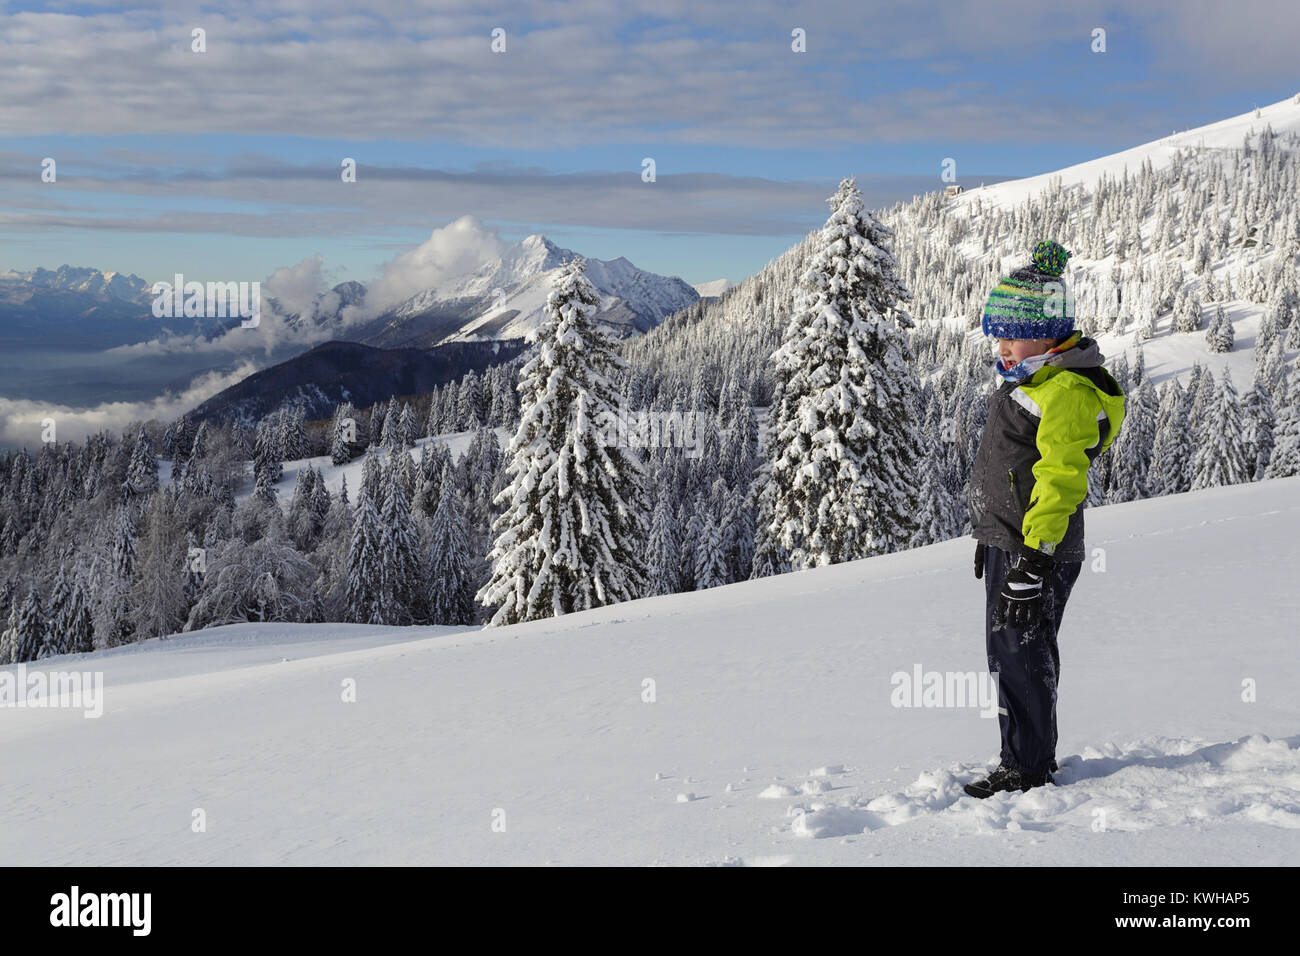 Young boy in snow covered beanie standing in fresh snow on a mountain covered with spruces, Krvavec, Slovenia. - Stock Image